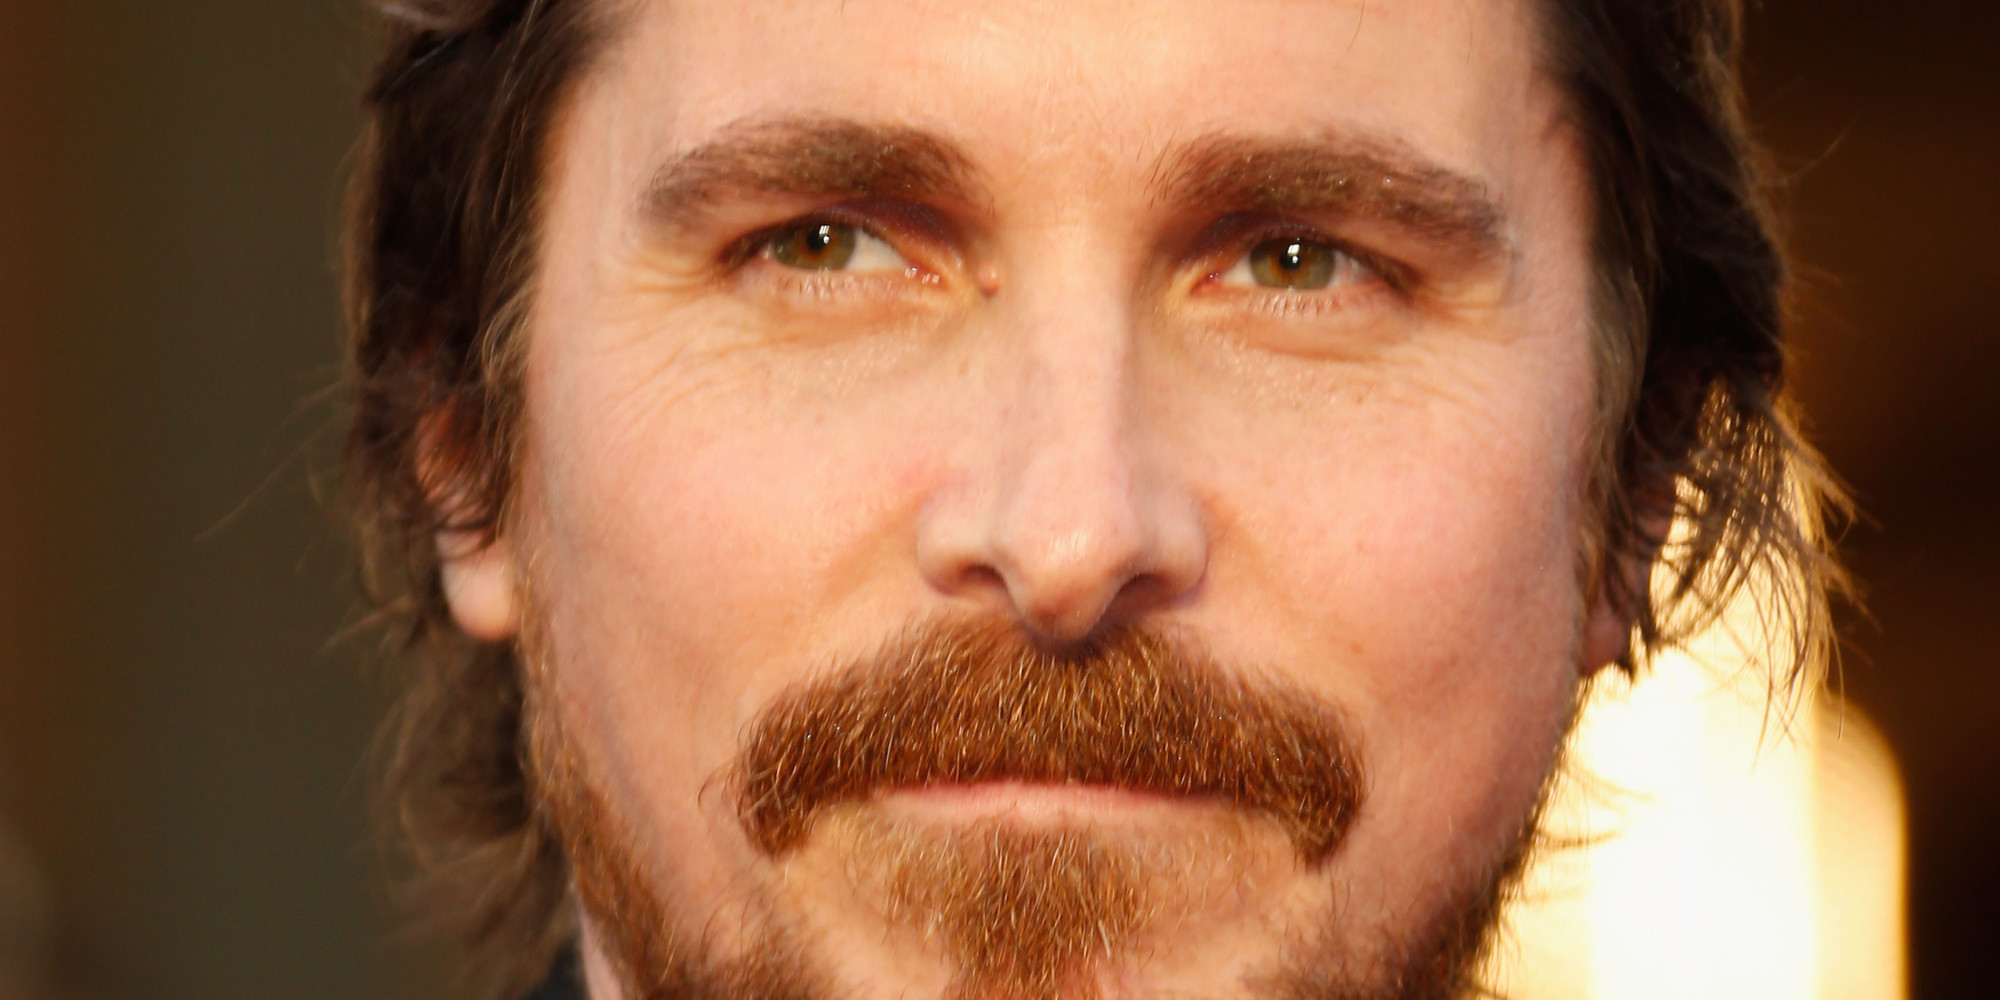 Christian Bale: Christian Bale Wants George Clooney To 'Stop Whining